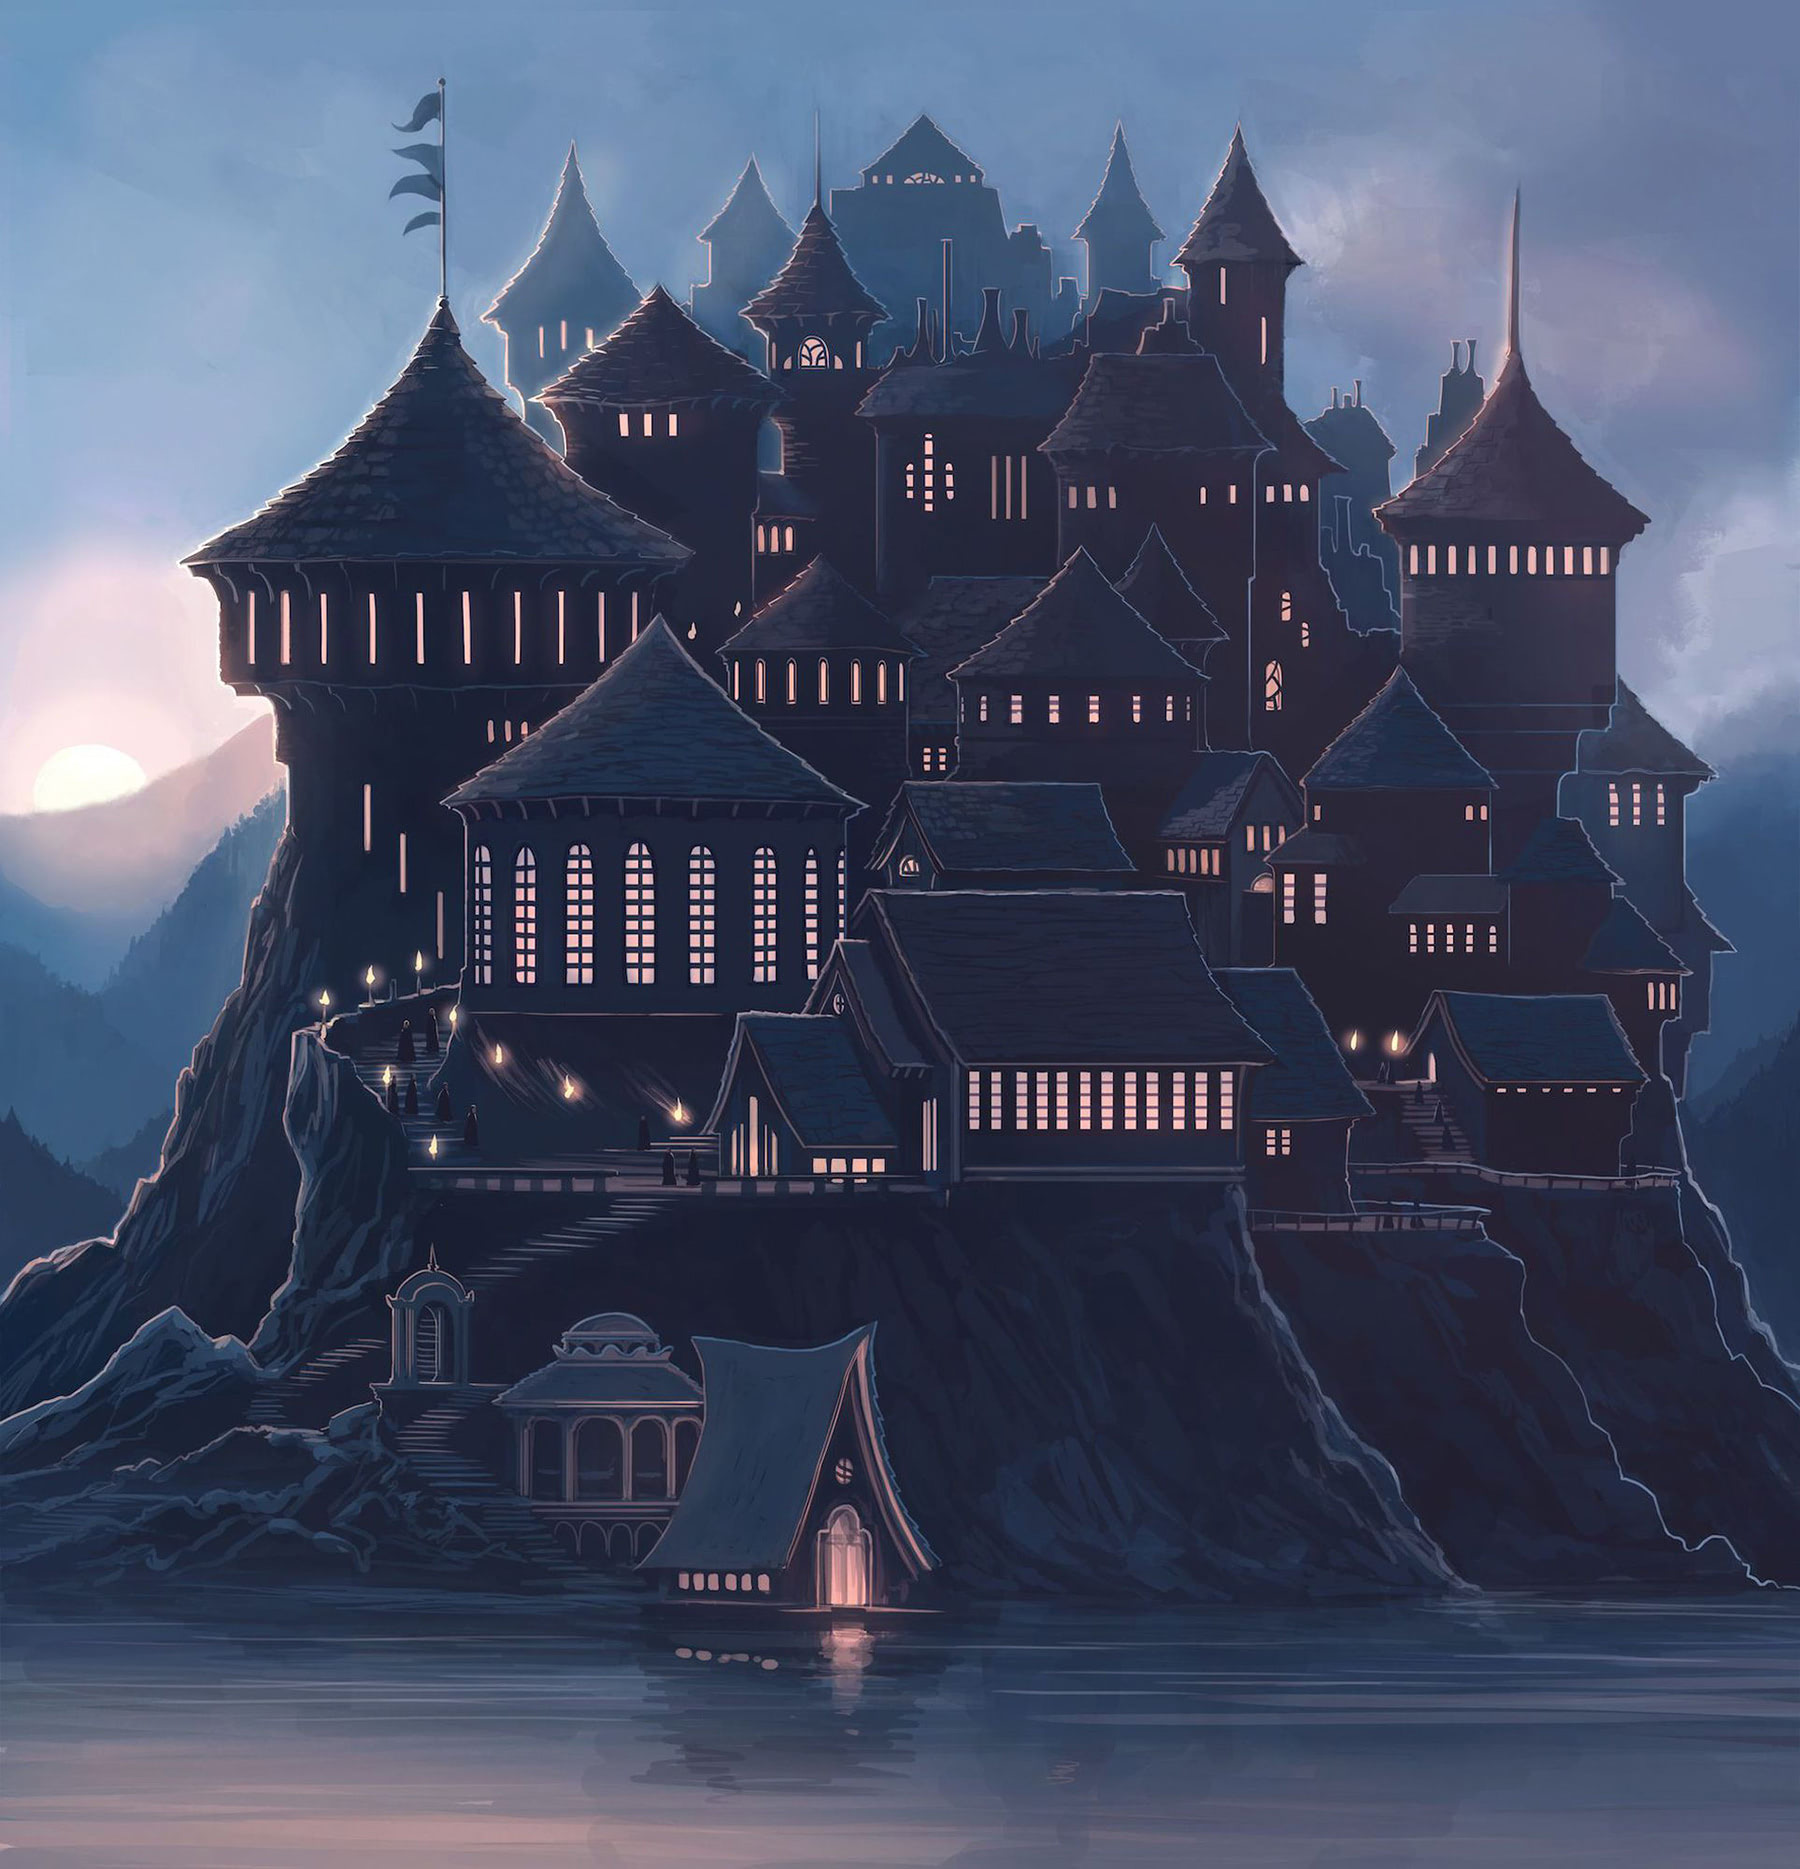 Hogwarts Castle (Kazu Kibuishi illustration)